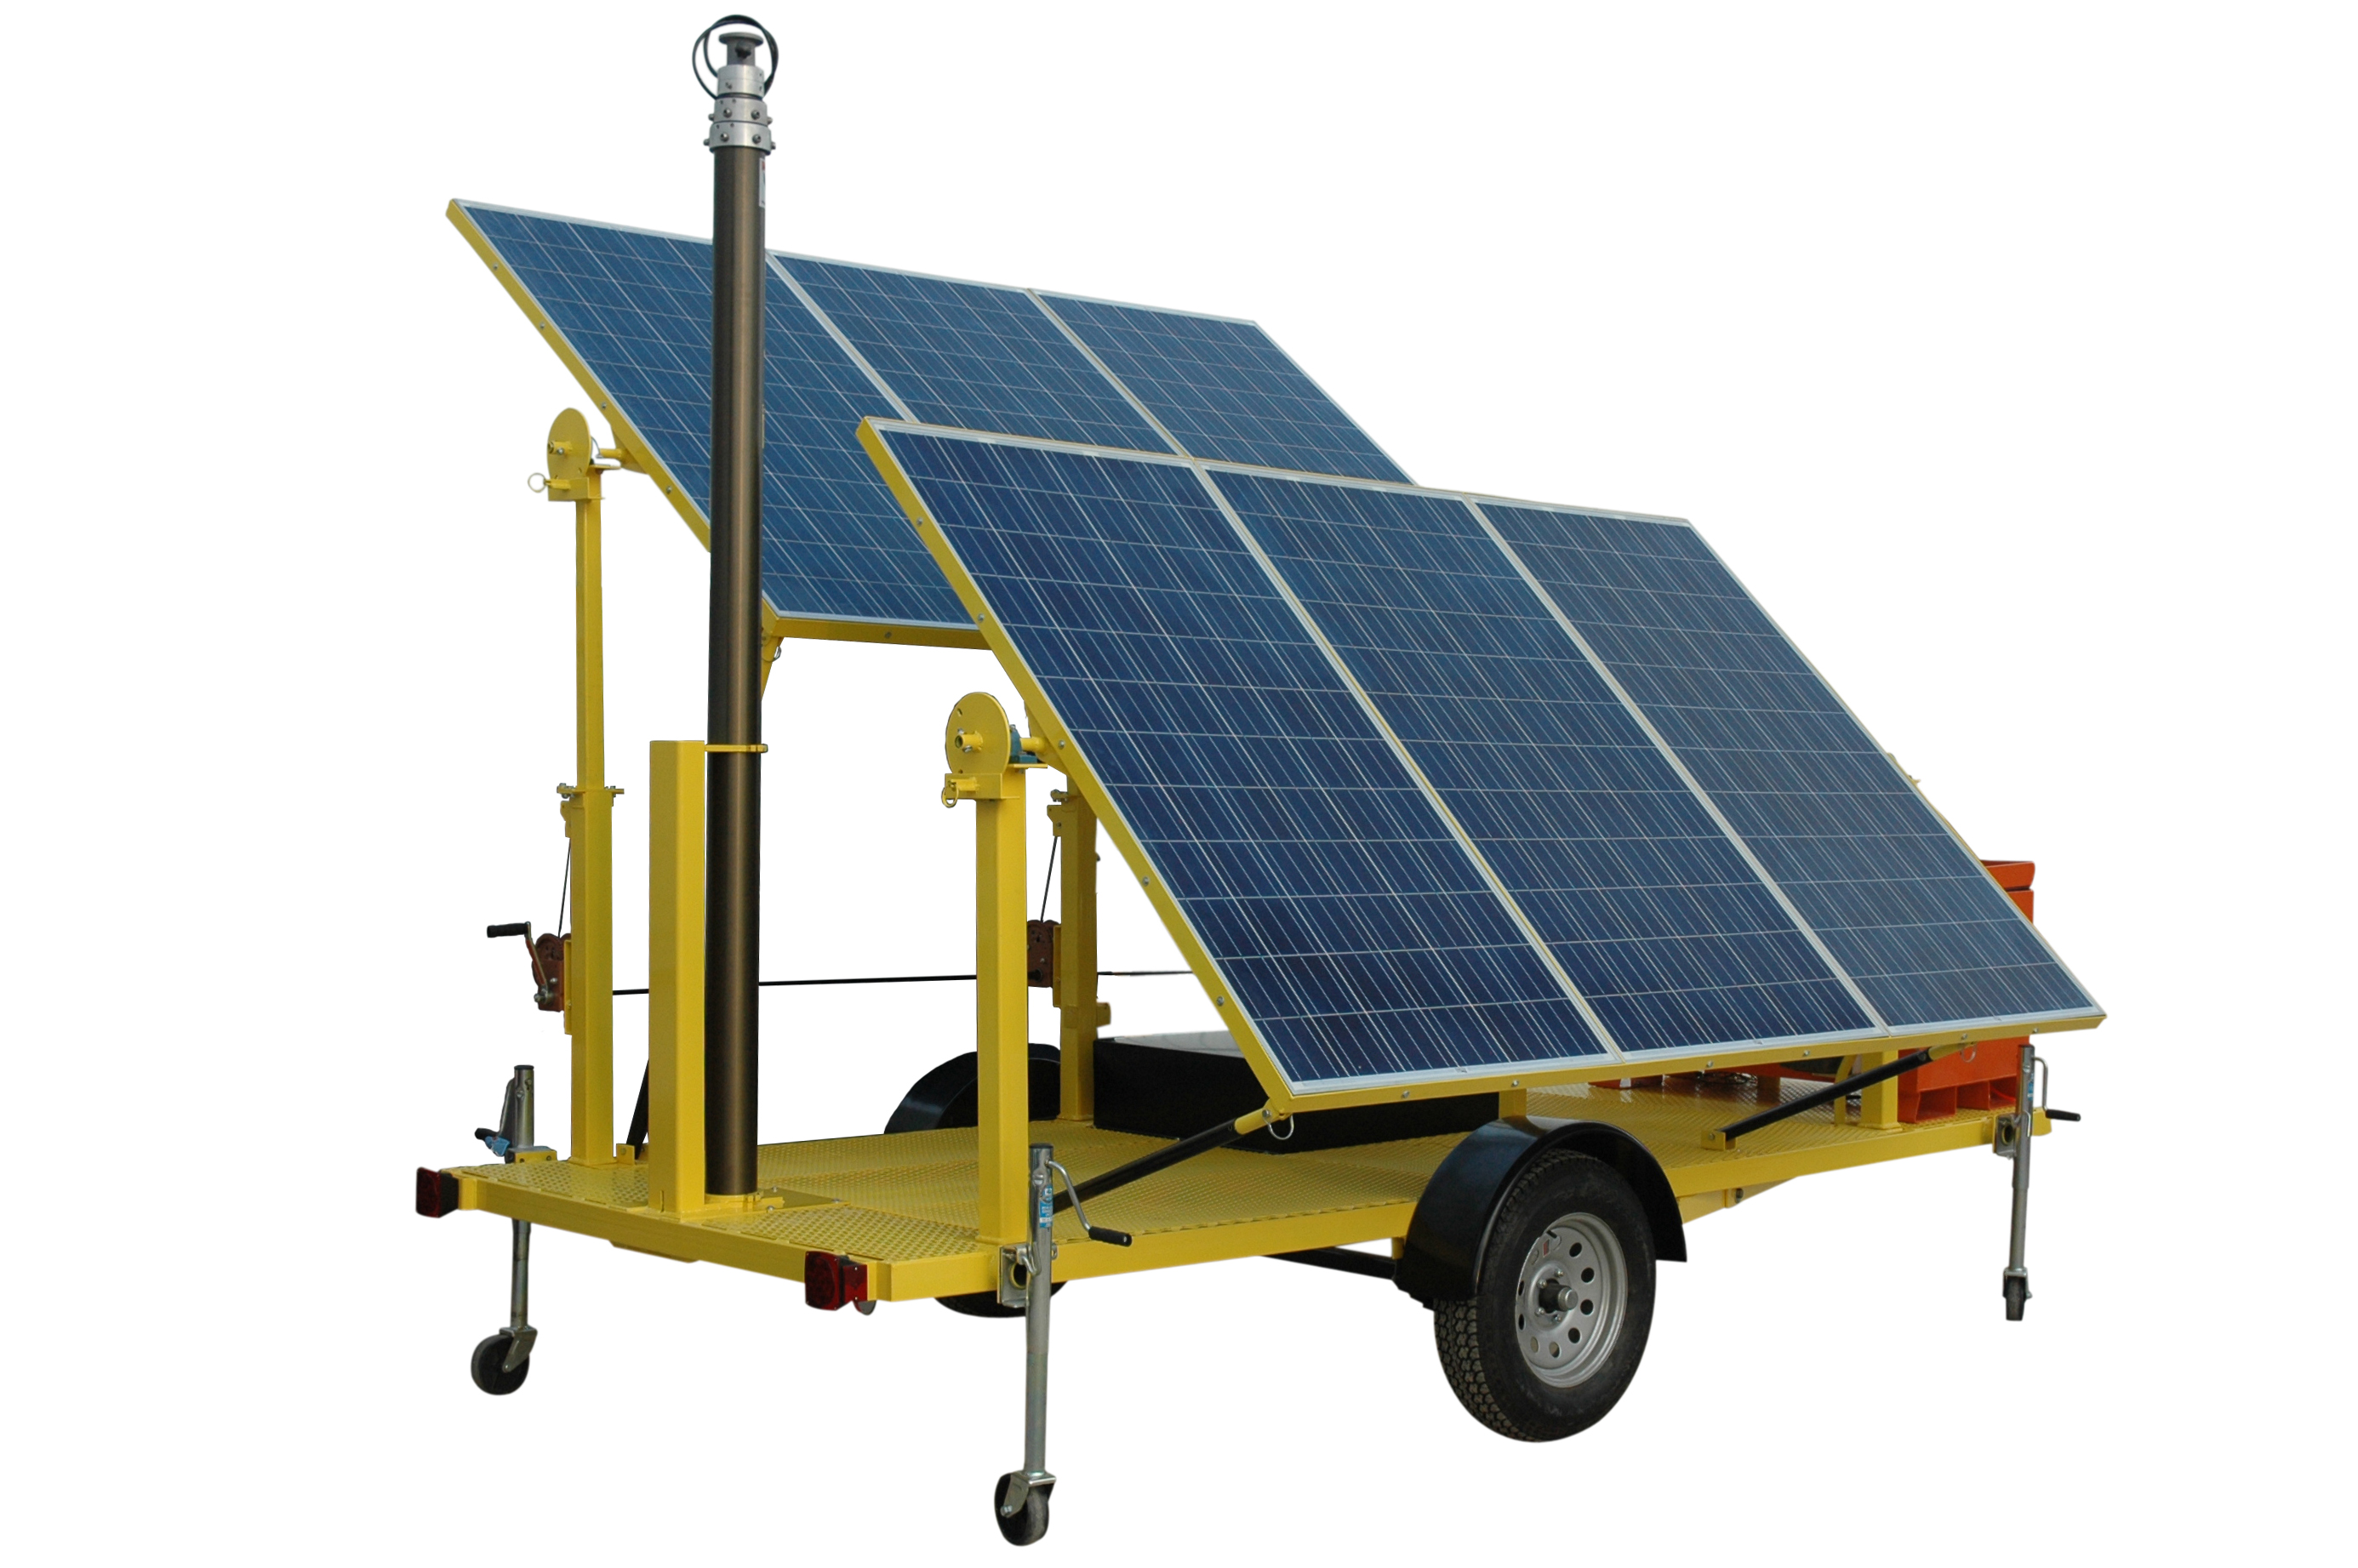 Larson Electronics Releases a Solar Powered Generator with a